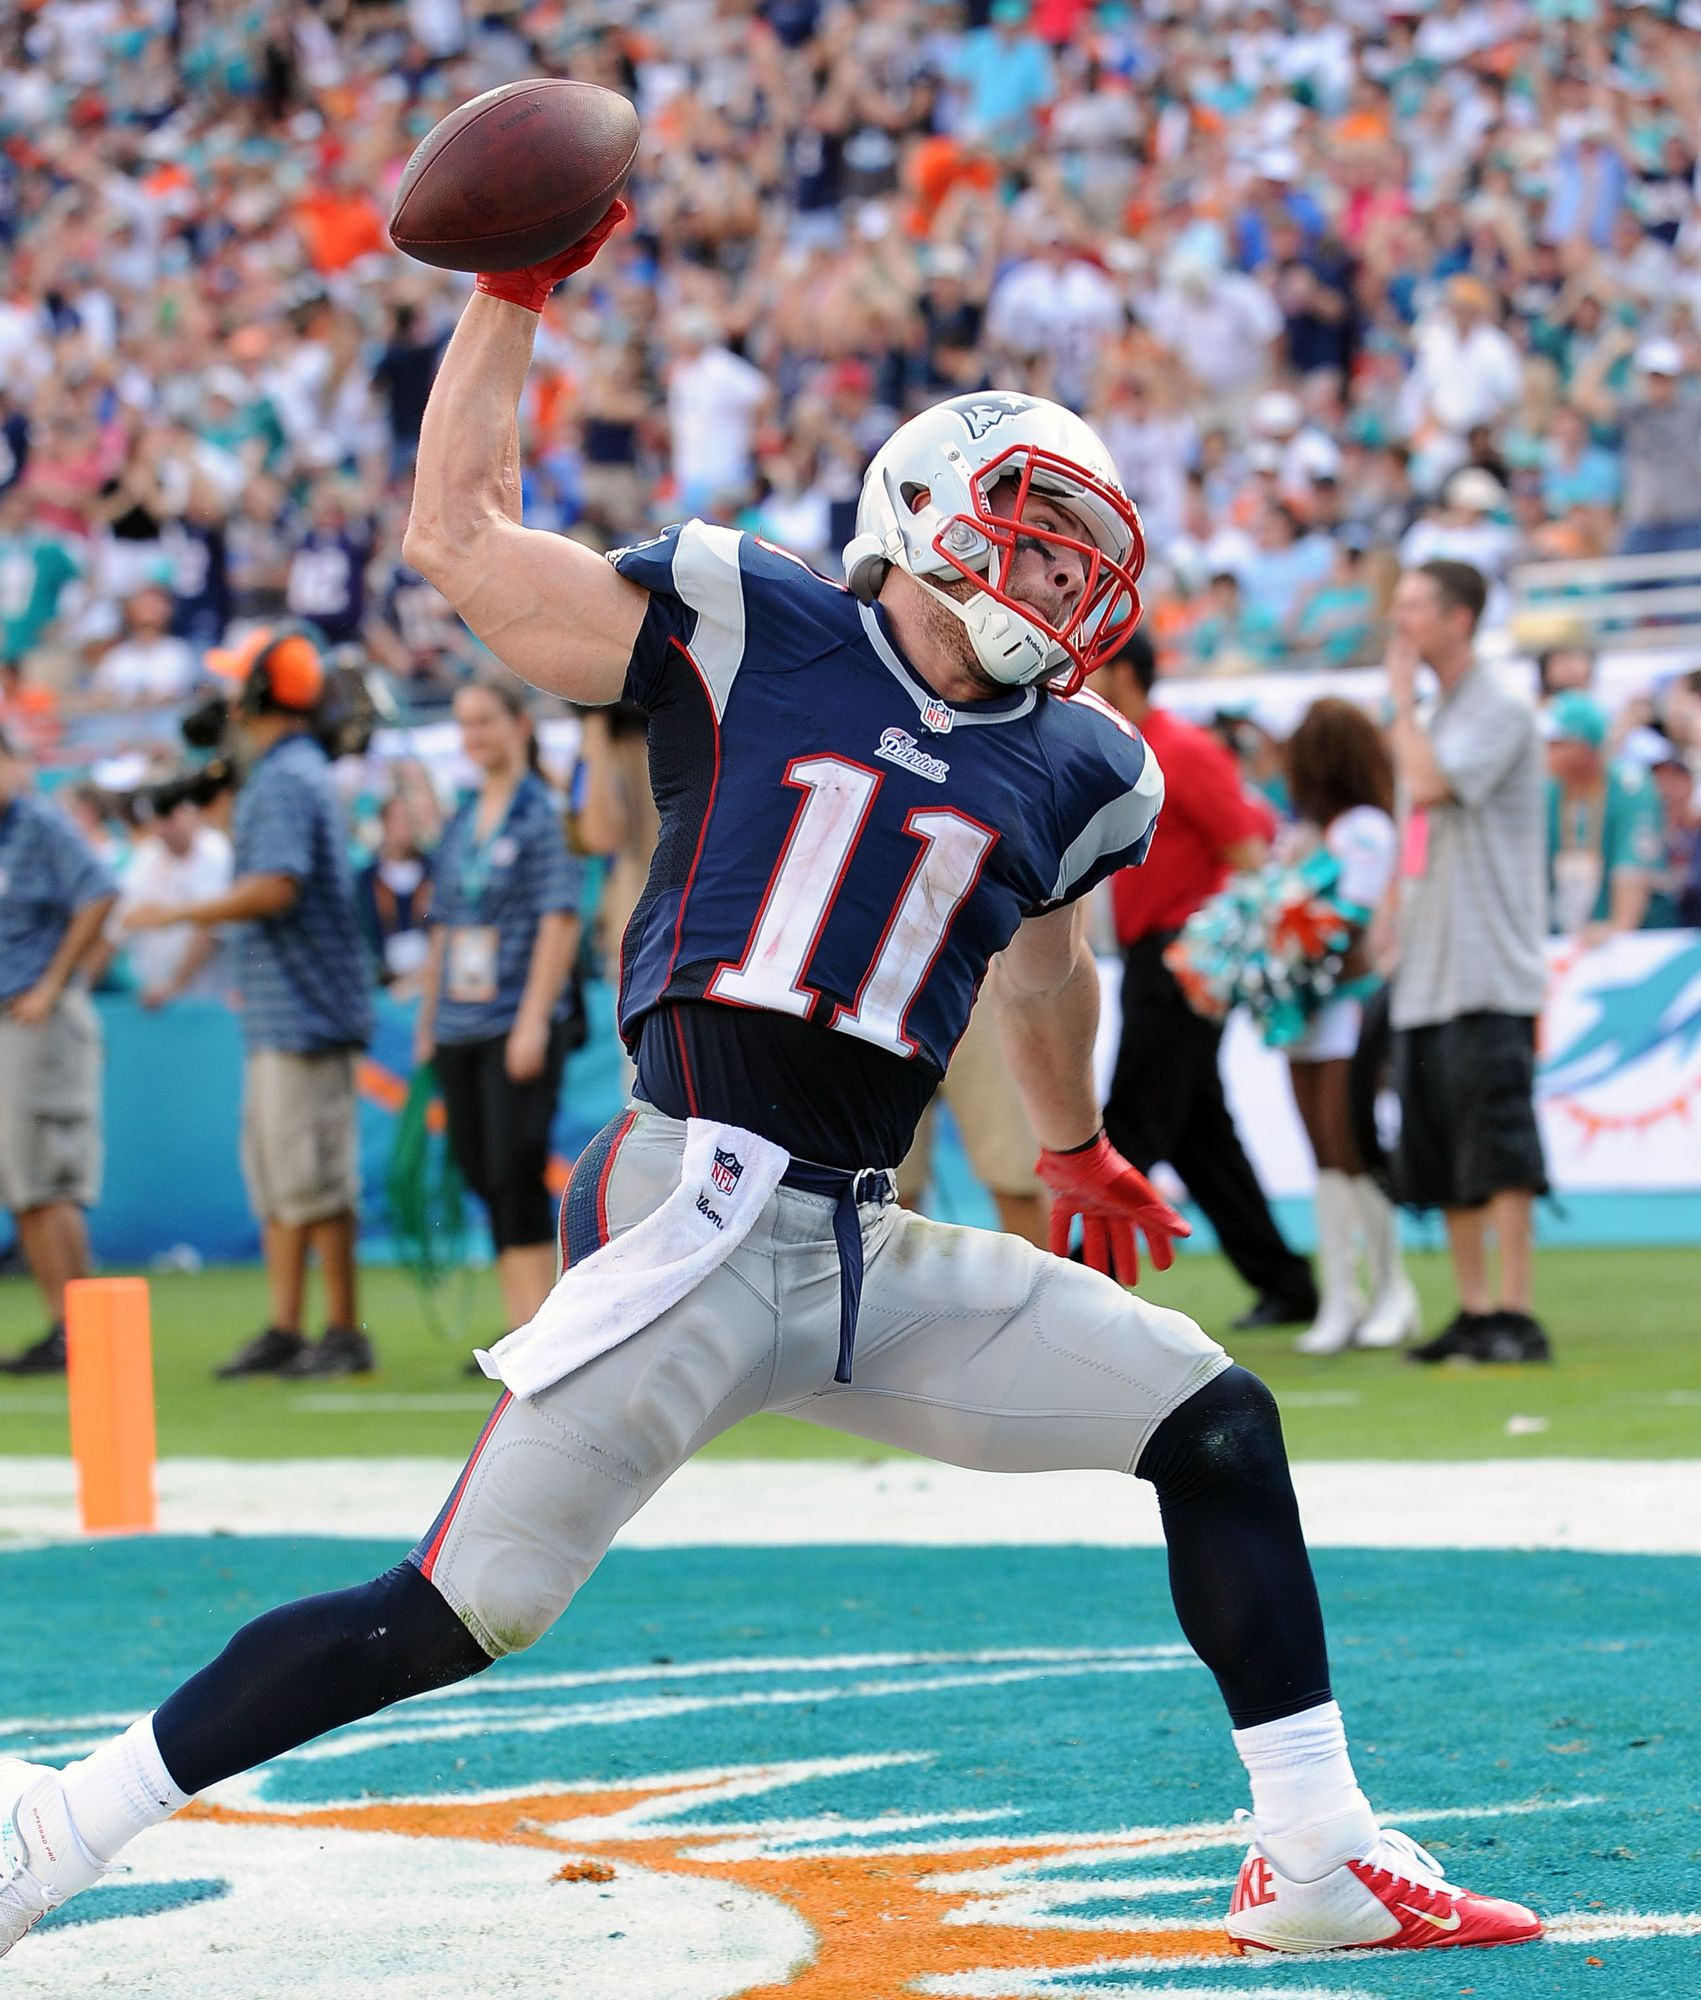 New England Patriots Wide Receiver Julian Edelman Celebrates A Touchdown In A Game Against The Miami Dolphins Dec 15 Futbol Americano Julian Edelman Futbol